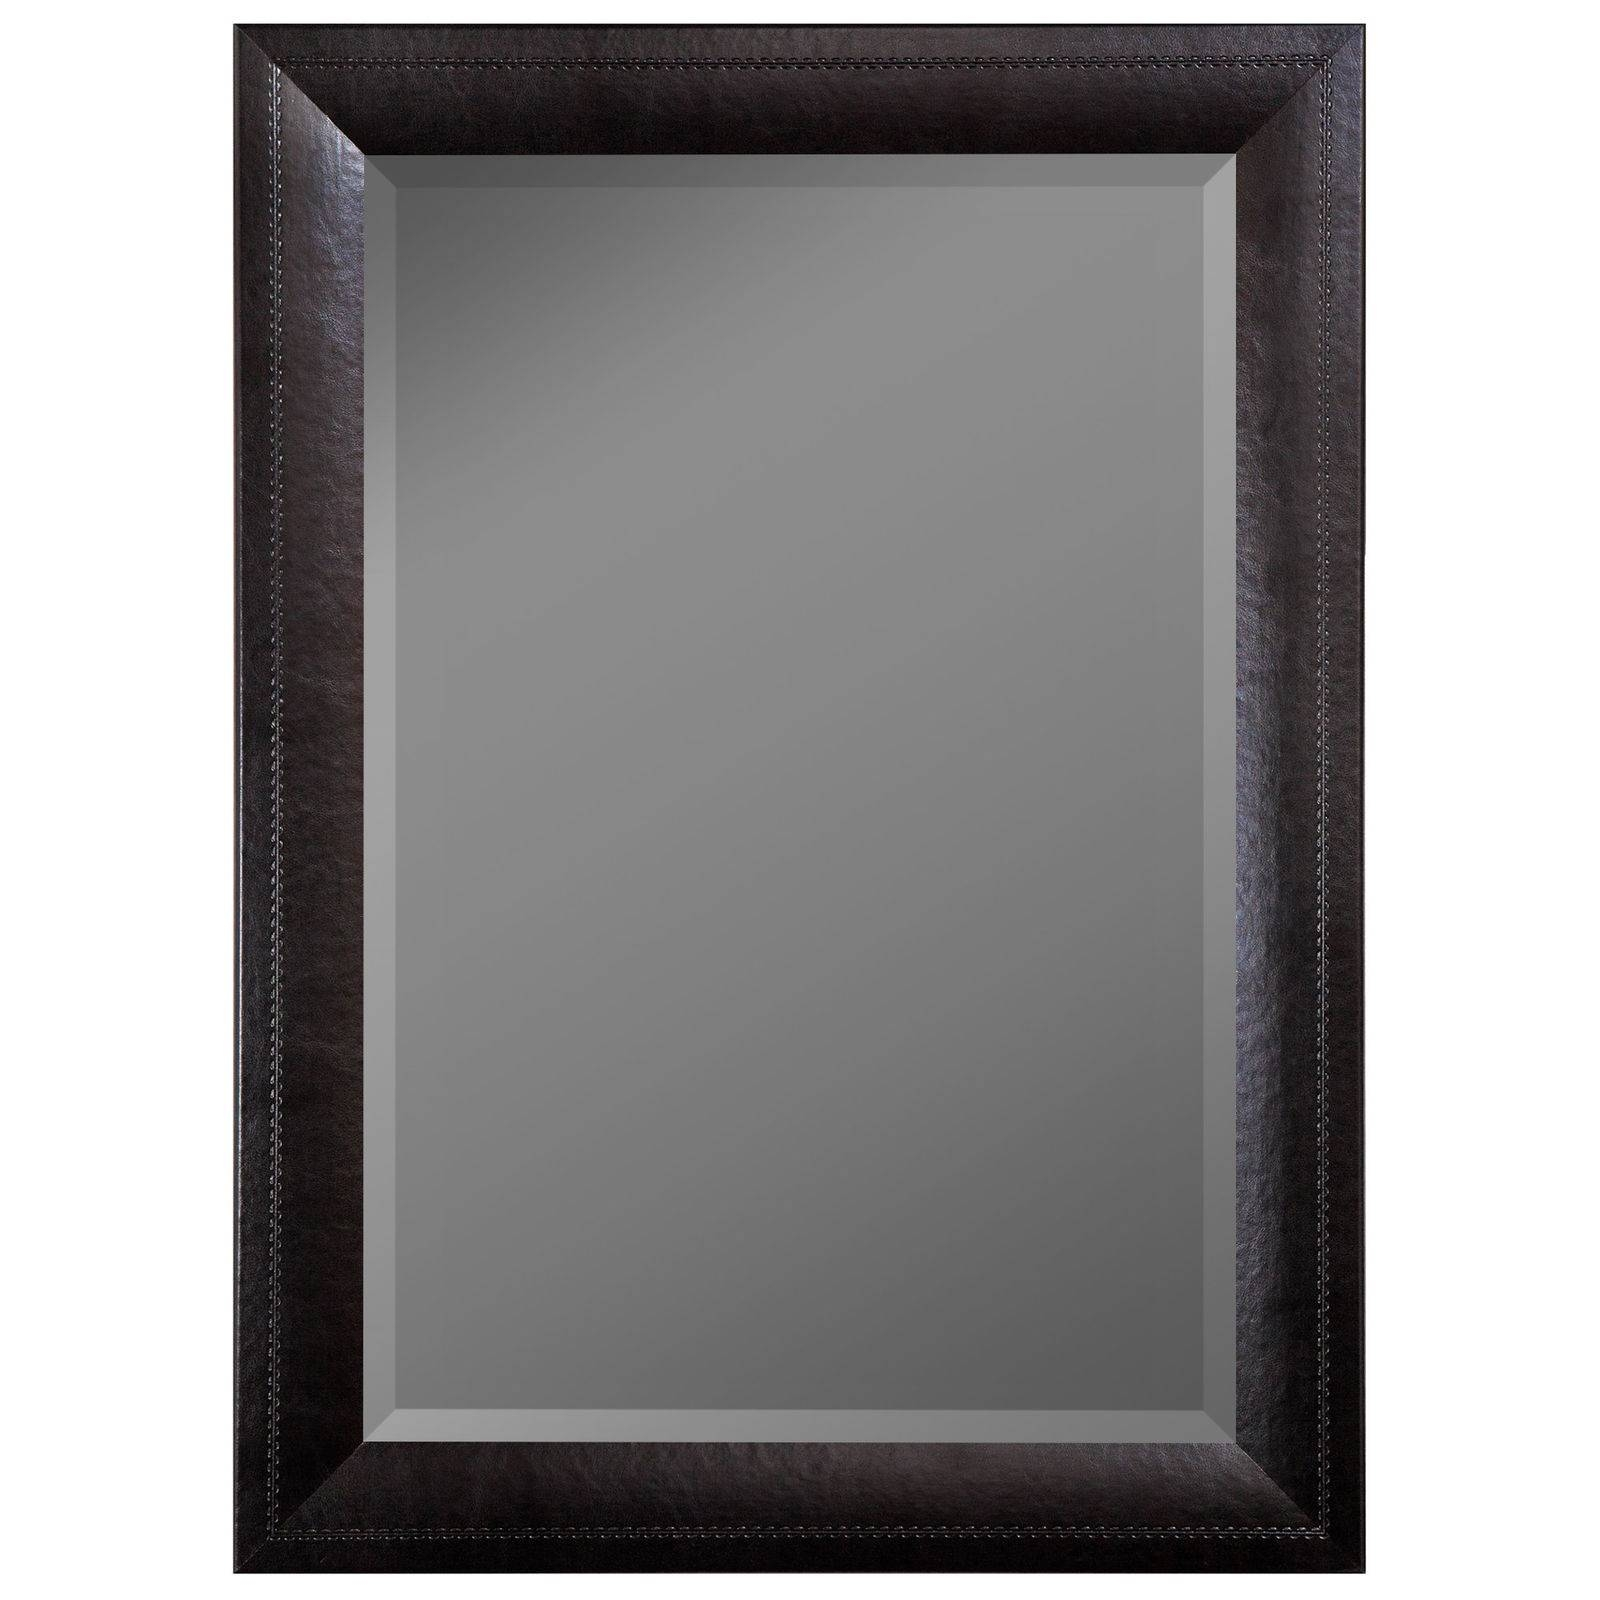 Hitchcock Butterfield Black Saddle Stitched Leather Framed Mirror In Black Leather Framed Mirrors (View 9 of 15)